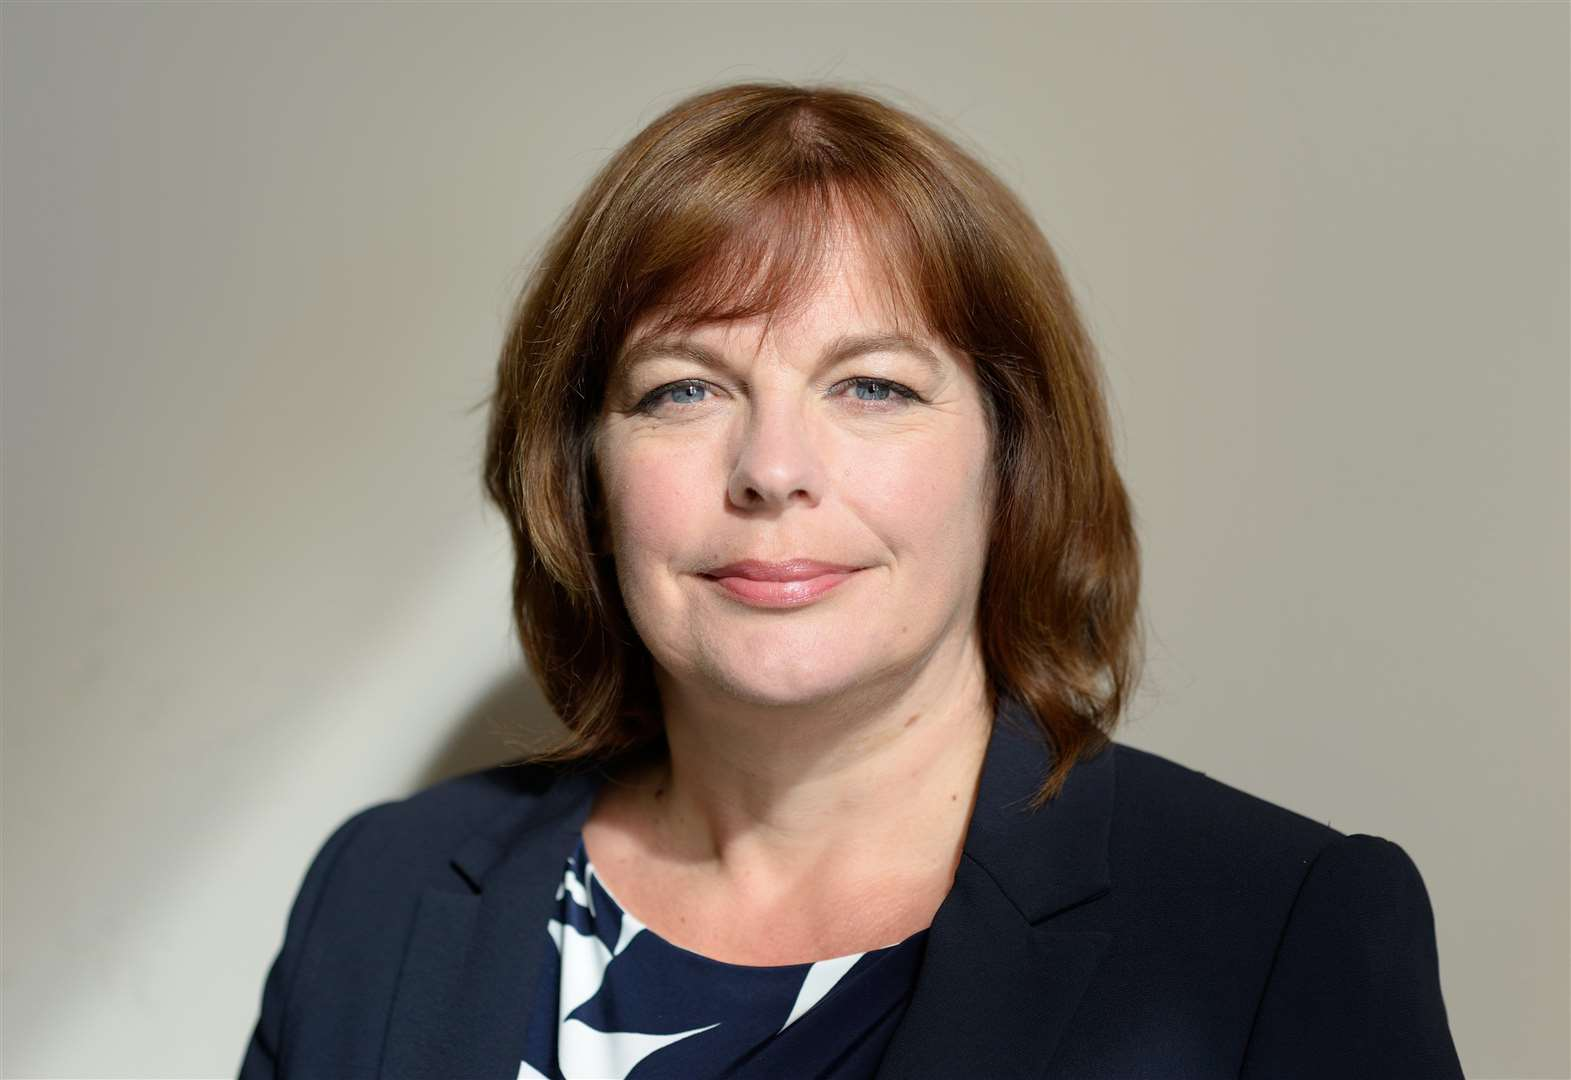 Senior British Chamber role confirmed for Sarah